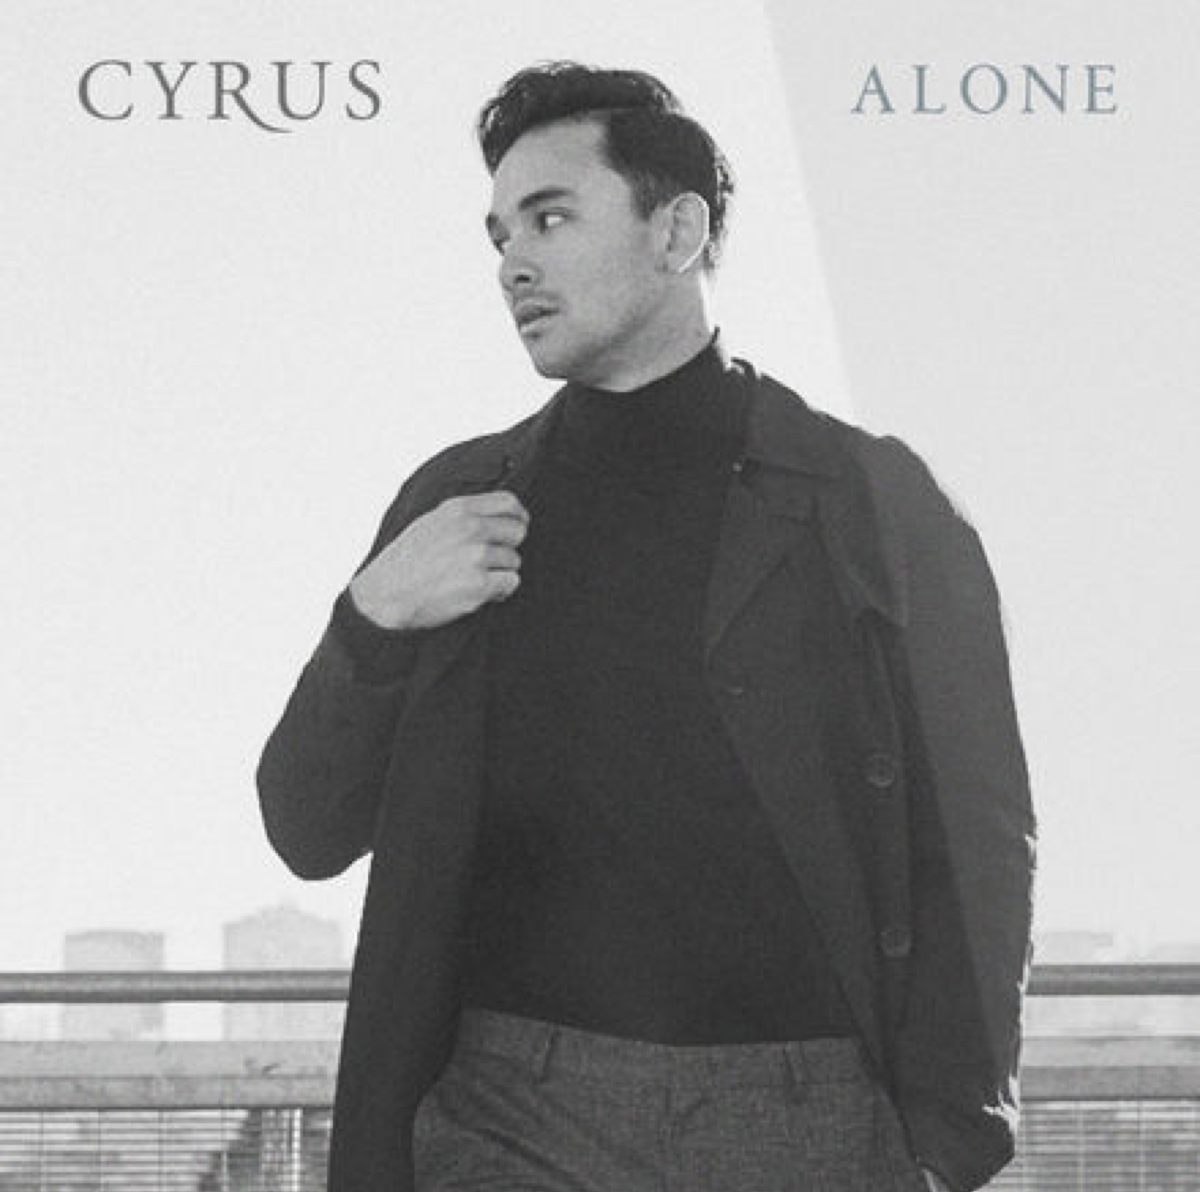 Alone - Cyrus - Producer, Mixer